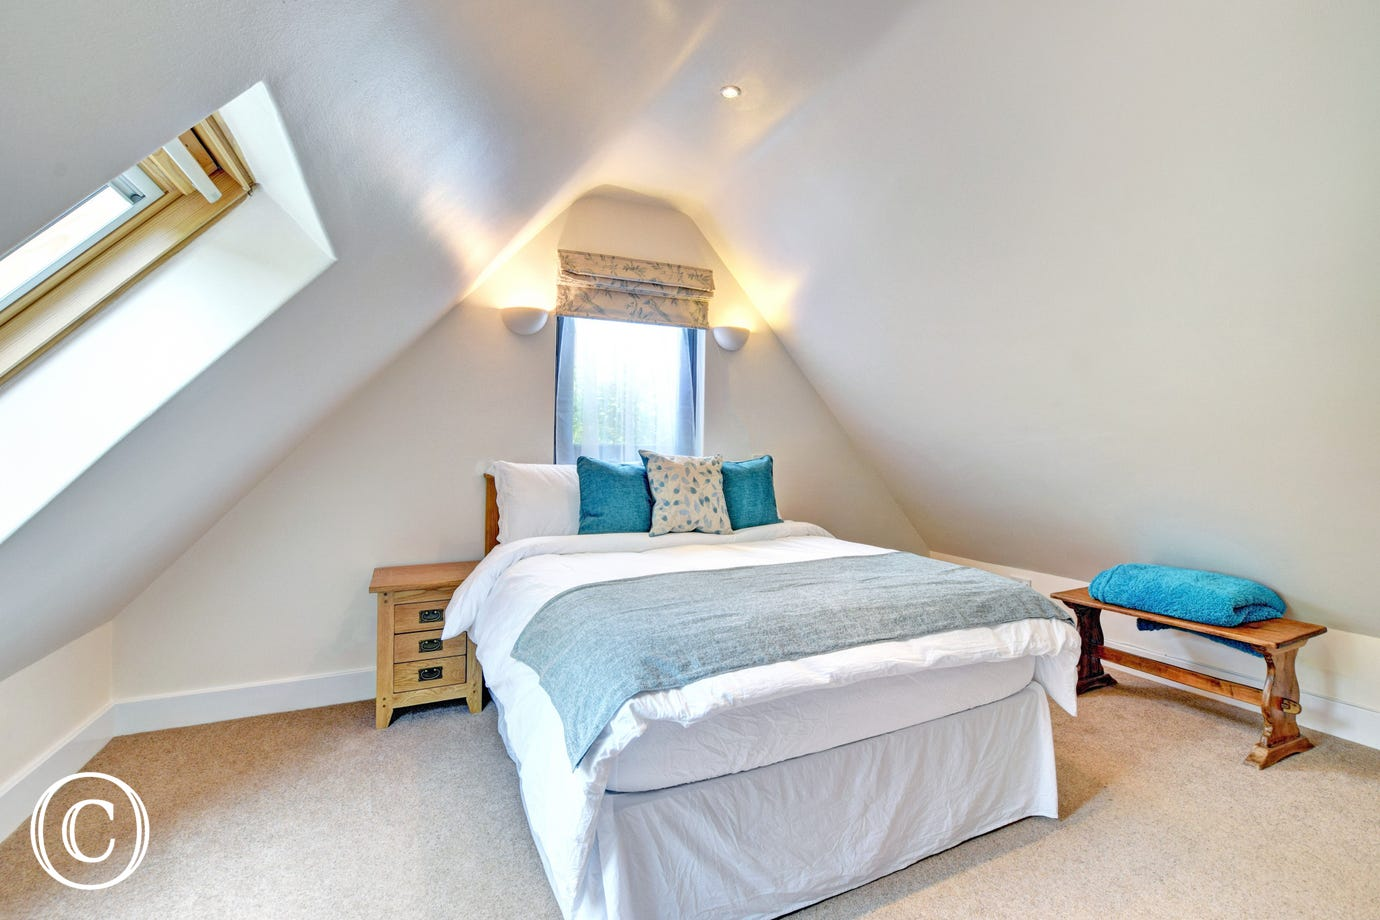 Southills Cottage, Cornworthy - Bedroom - view 1